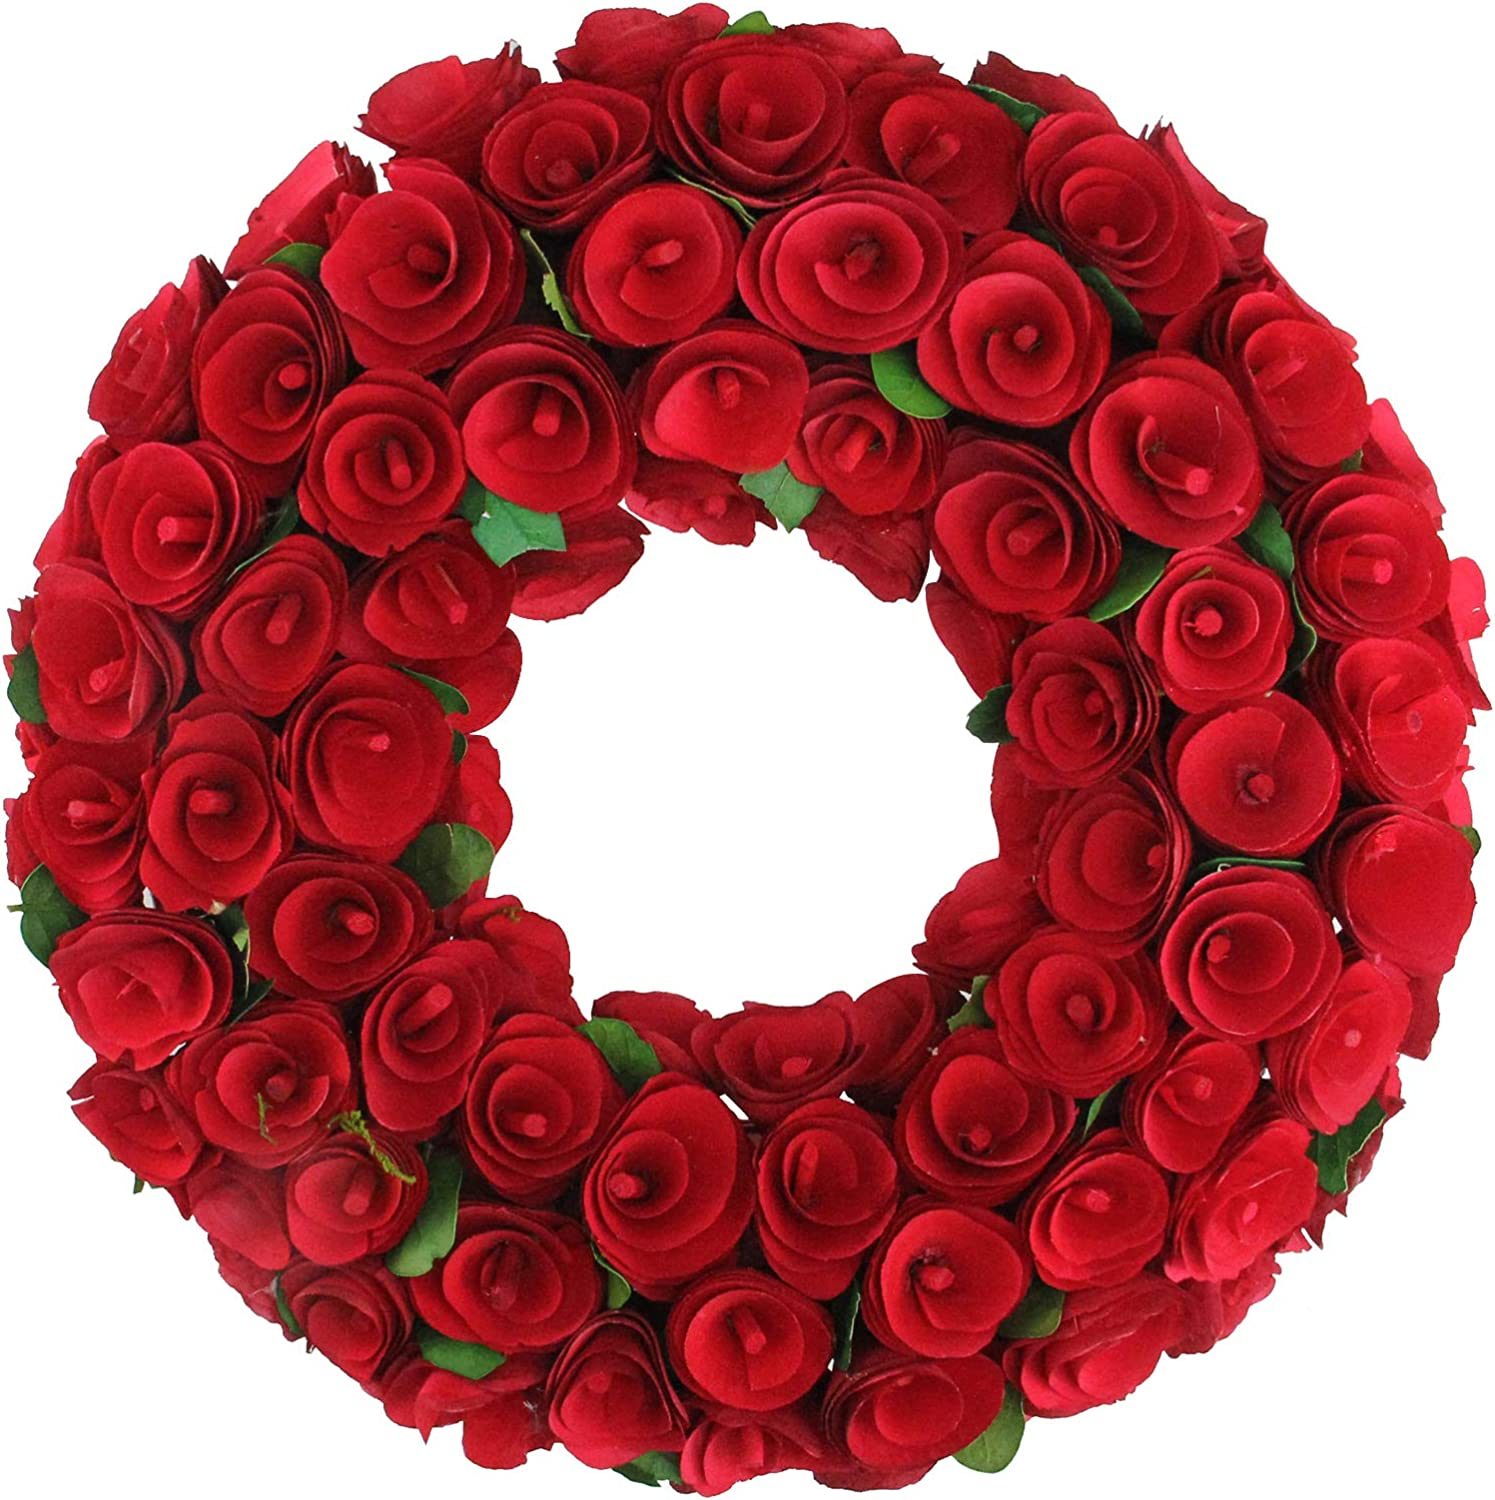 Popular products Be super welcome Northlight Red Wooden Rose Floral Artificial Wre Valentine's Day